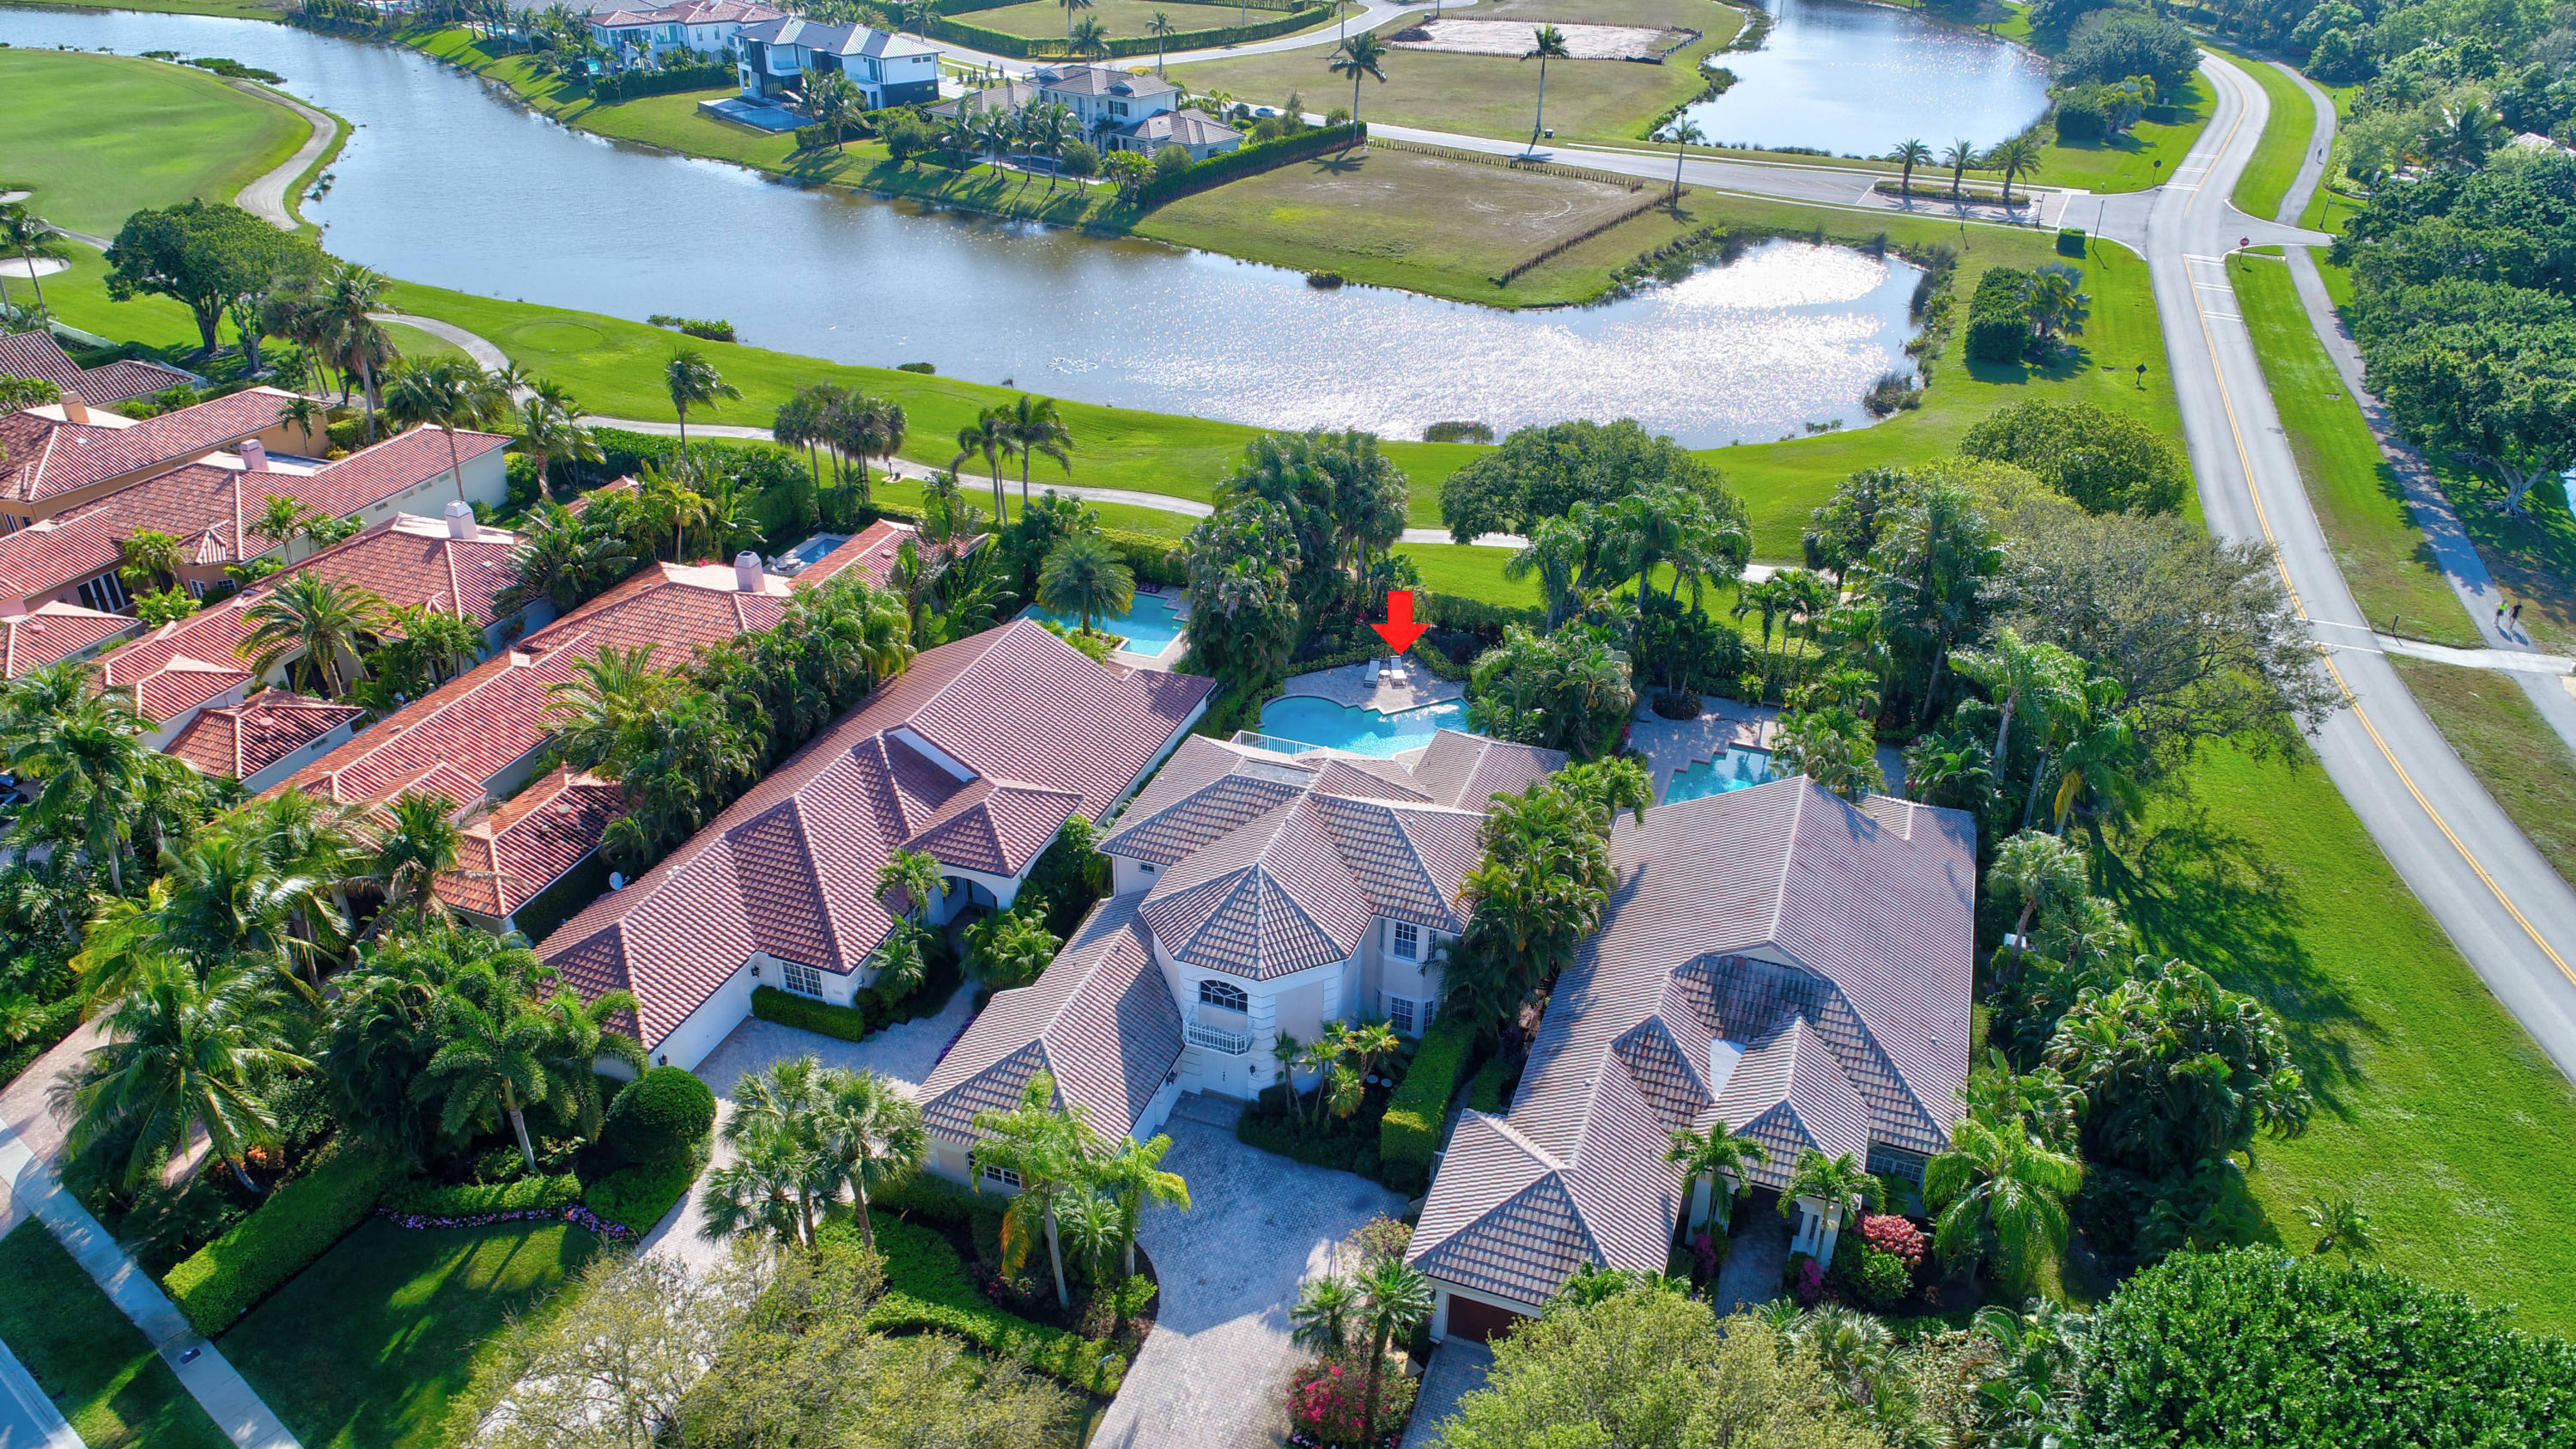 12660 Sunnydale Drive, Wellington, Florida 33414, 3 Bedrooms Bedrooms, ,3.1 BathroomsBathrooms,Single Family,For Sale,Palm Beach Polo,Sunnydale,RX-10406234